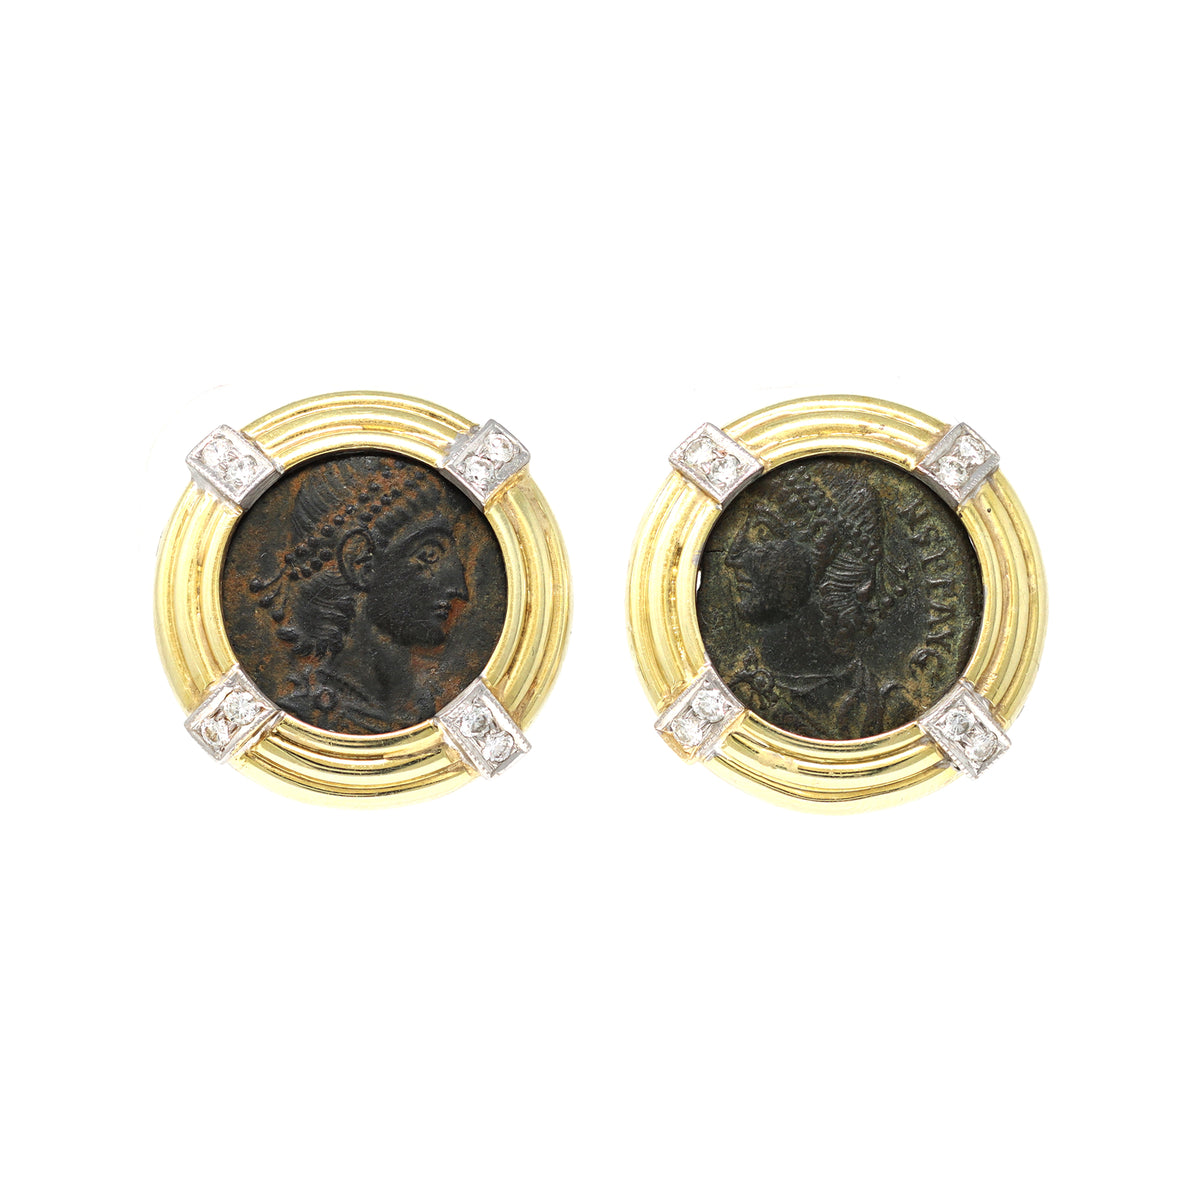 Ancient Roman Coin Clip On Earrings with Diamond Accents in 18k front view